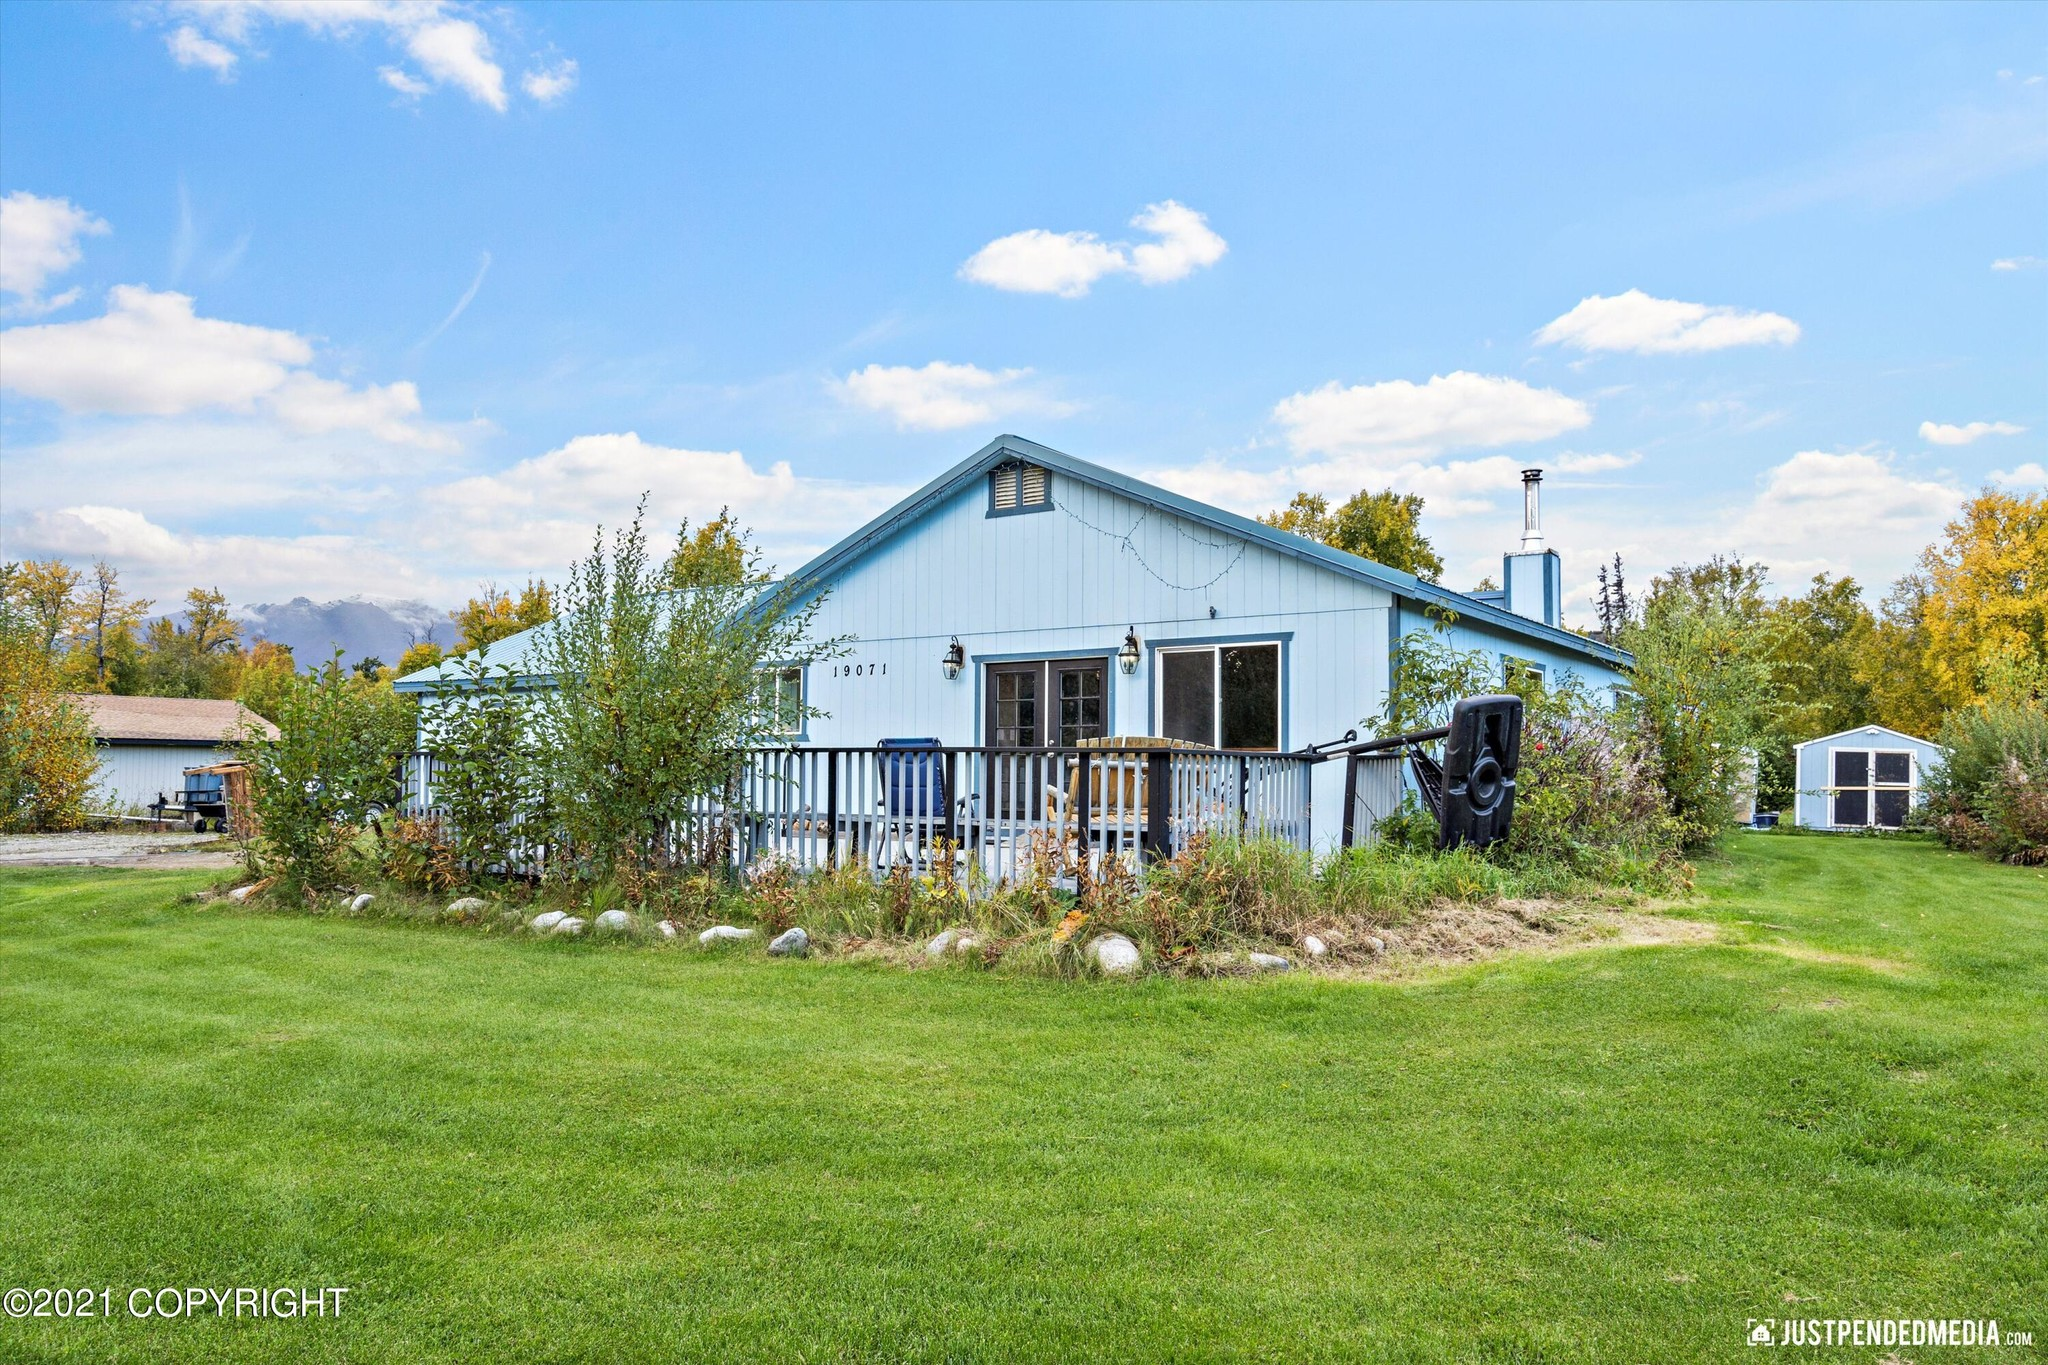 1800 SqFt House In Tina Marie Hoffman Subdivision